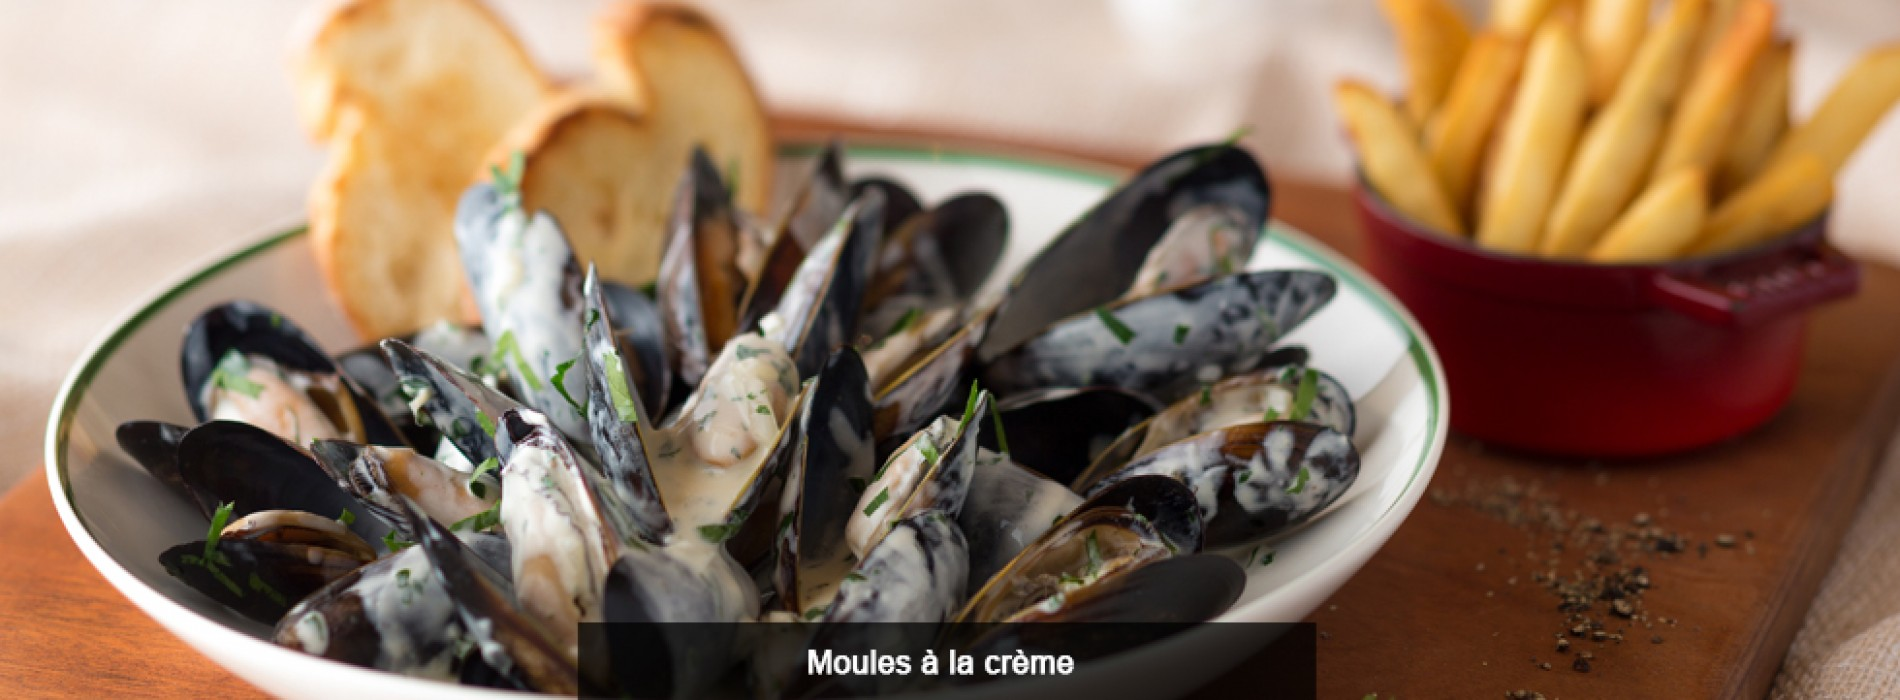 Indulge in Le French GourMay Champagne-Paired Menu at The Parisian Macao Brasserie restaurant